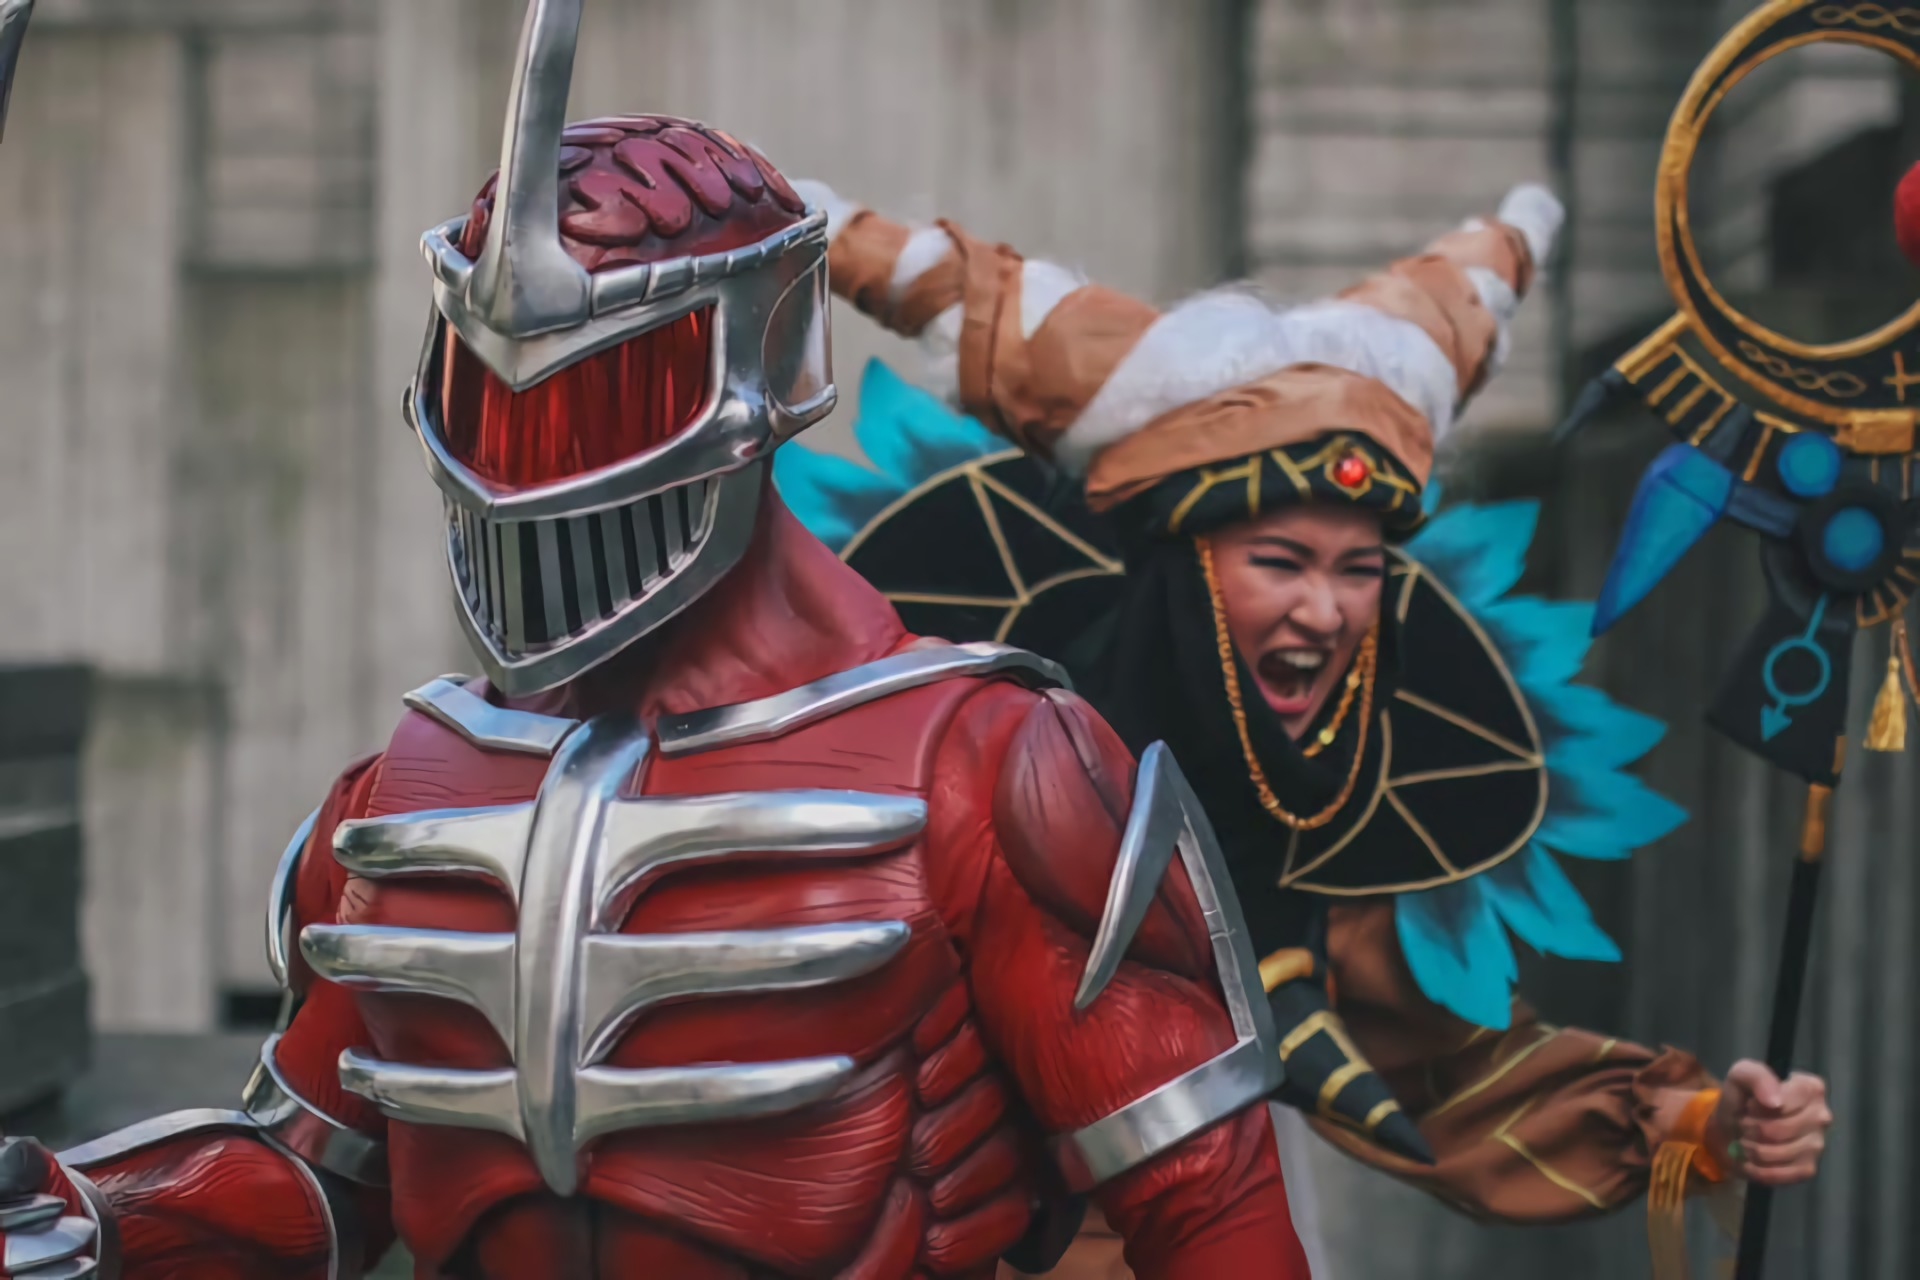 Mighty Morphin' Power Rangers: Lord Zedd and Rita Repulsa cosplays by Nerd_Alert and Mae Uy